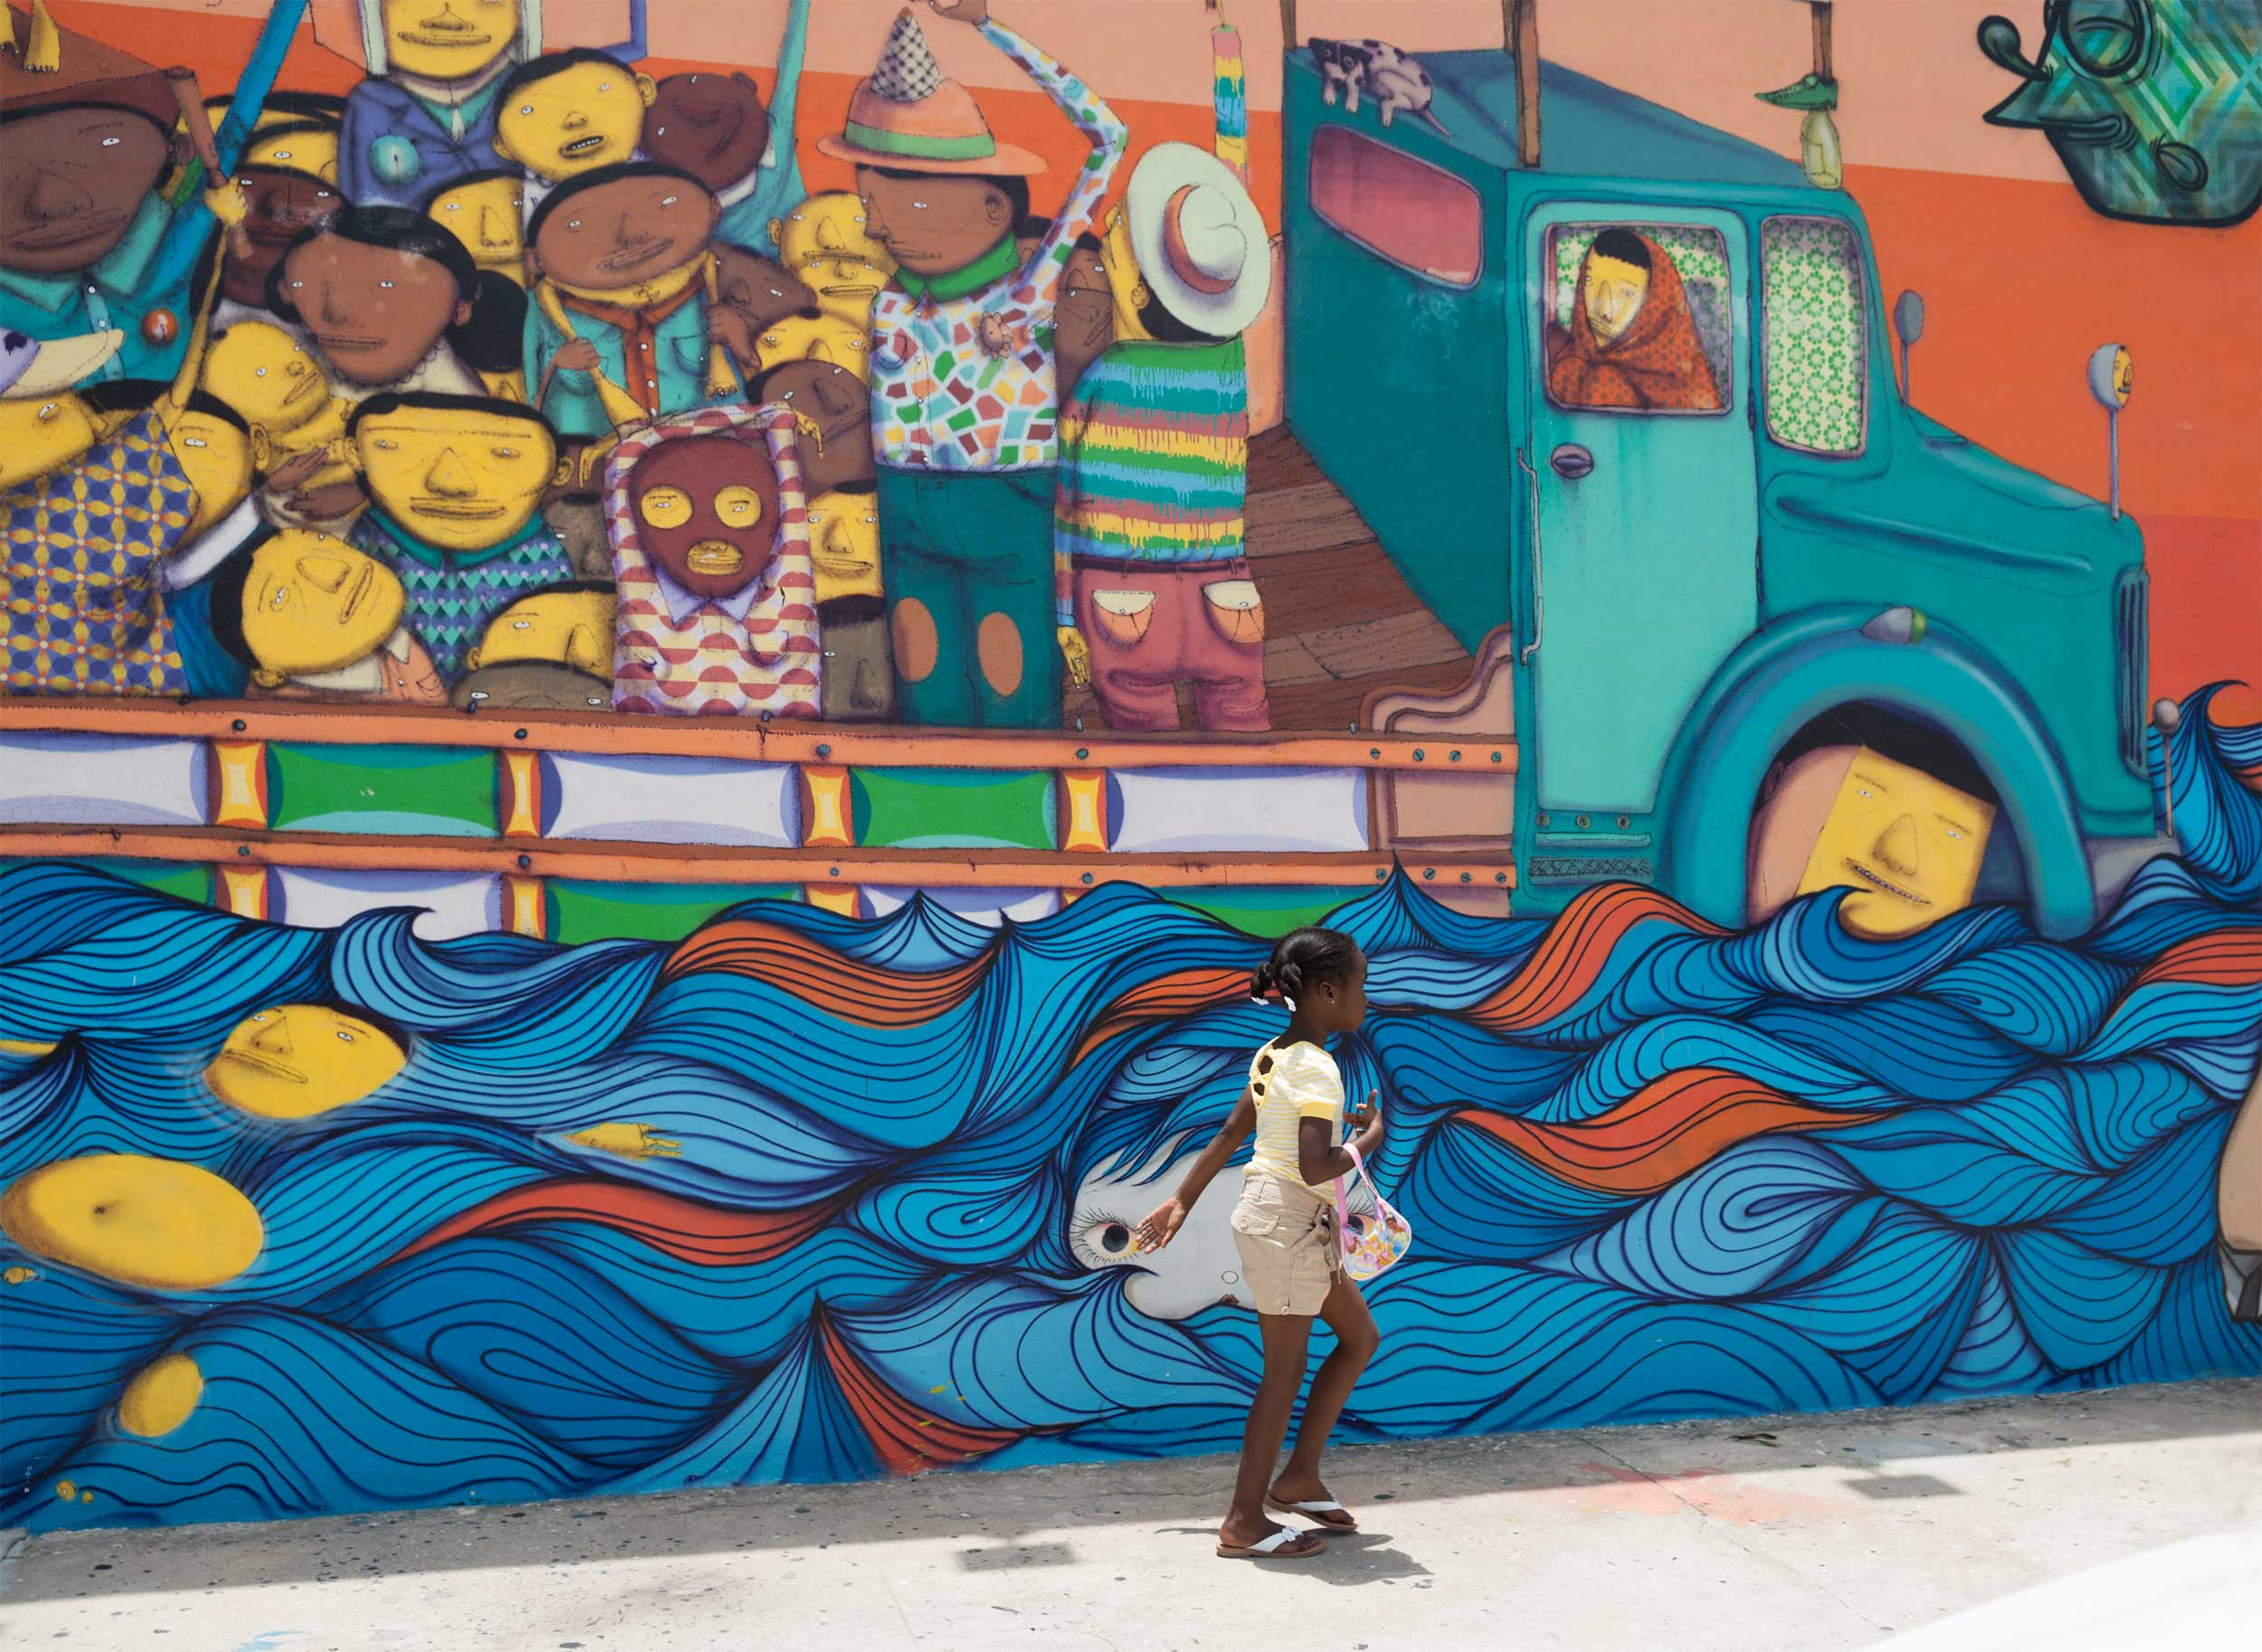 Child with a little handbag walking past a mural of a flat-bed truck carrying multiple people fording water